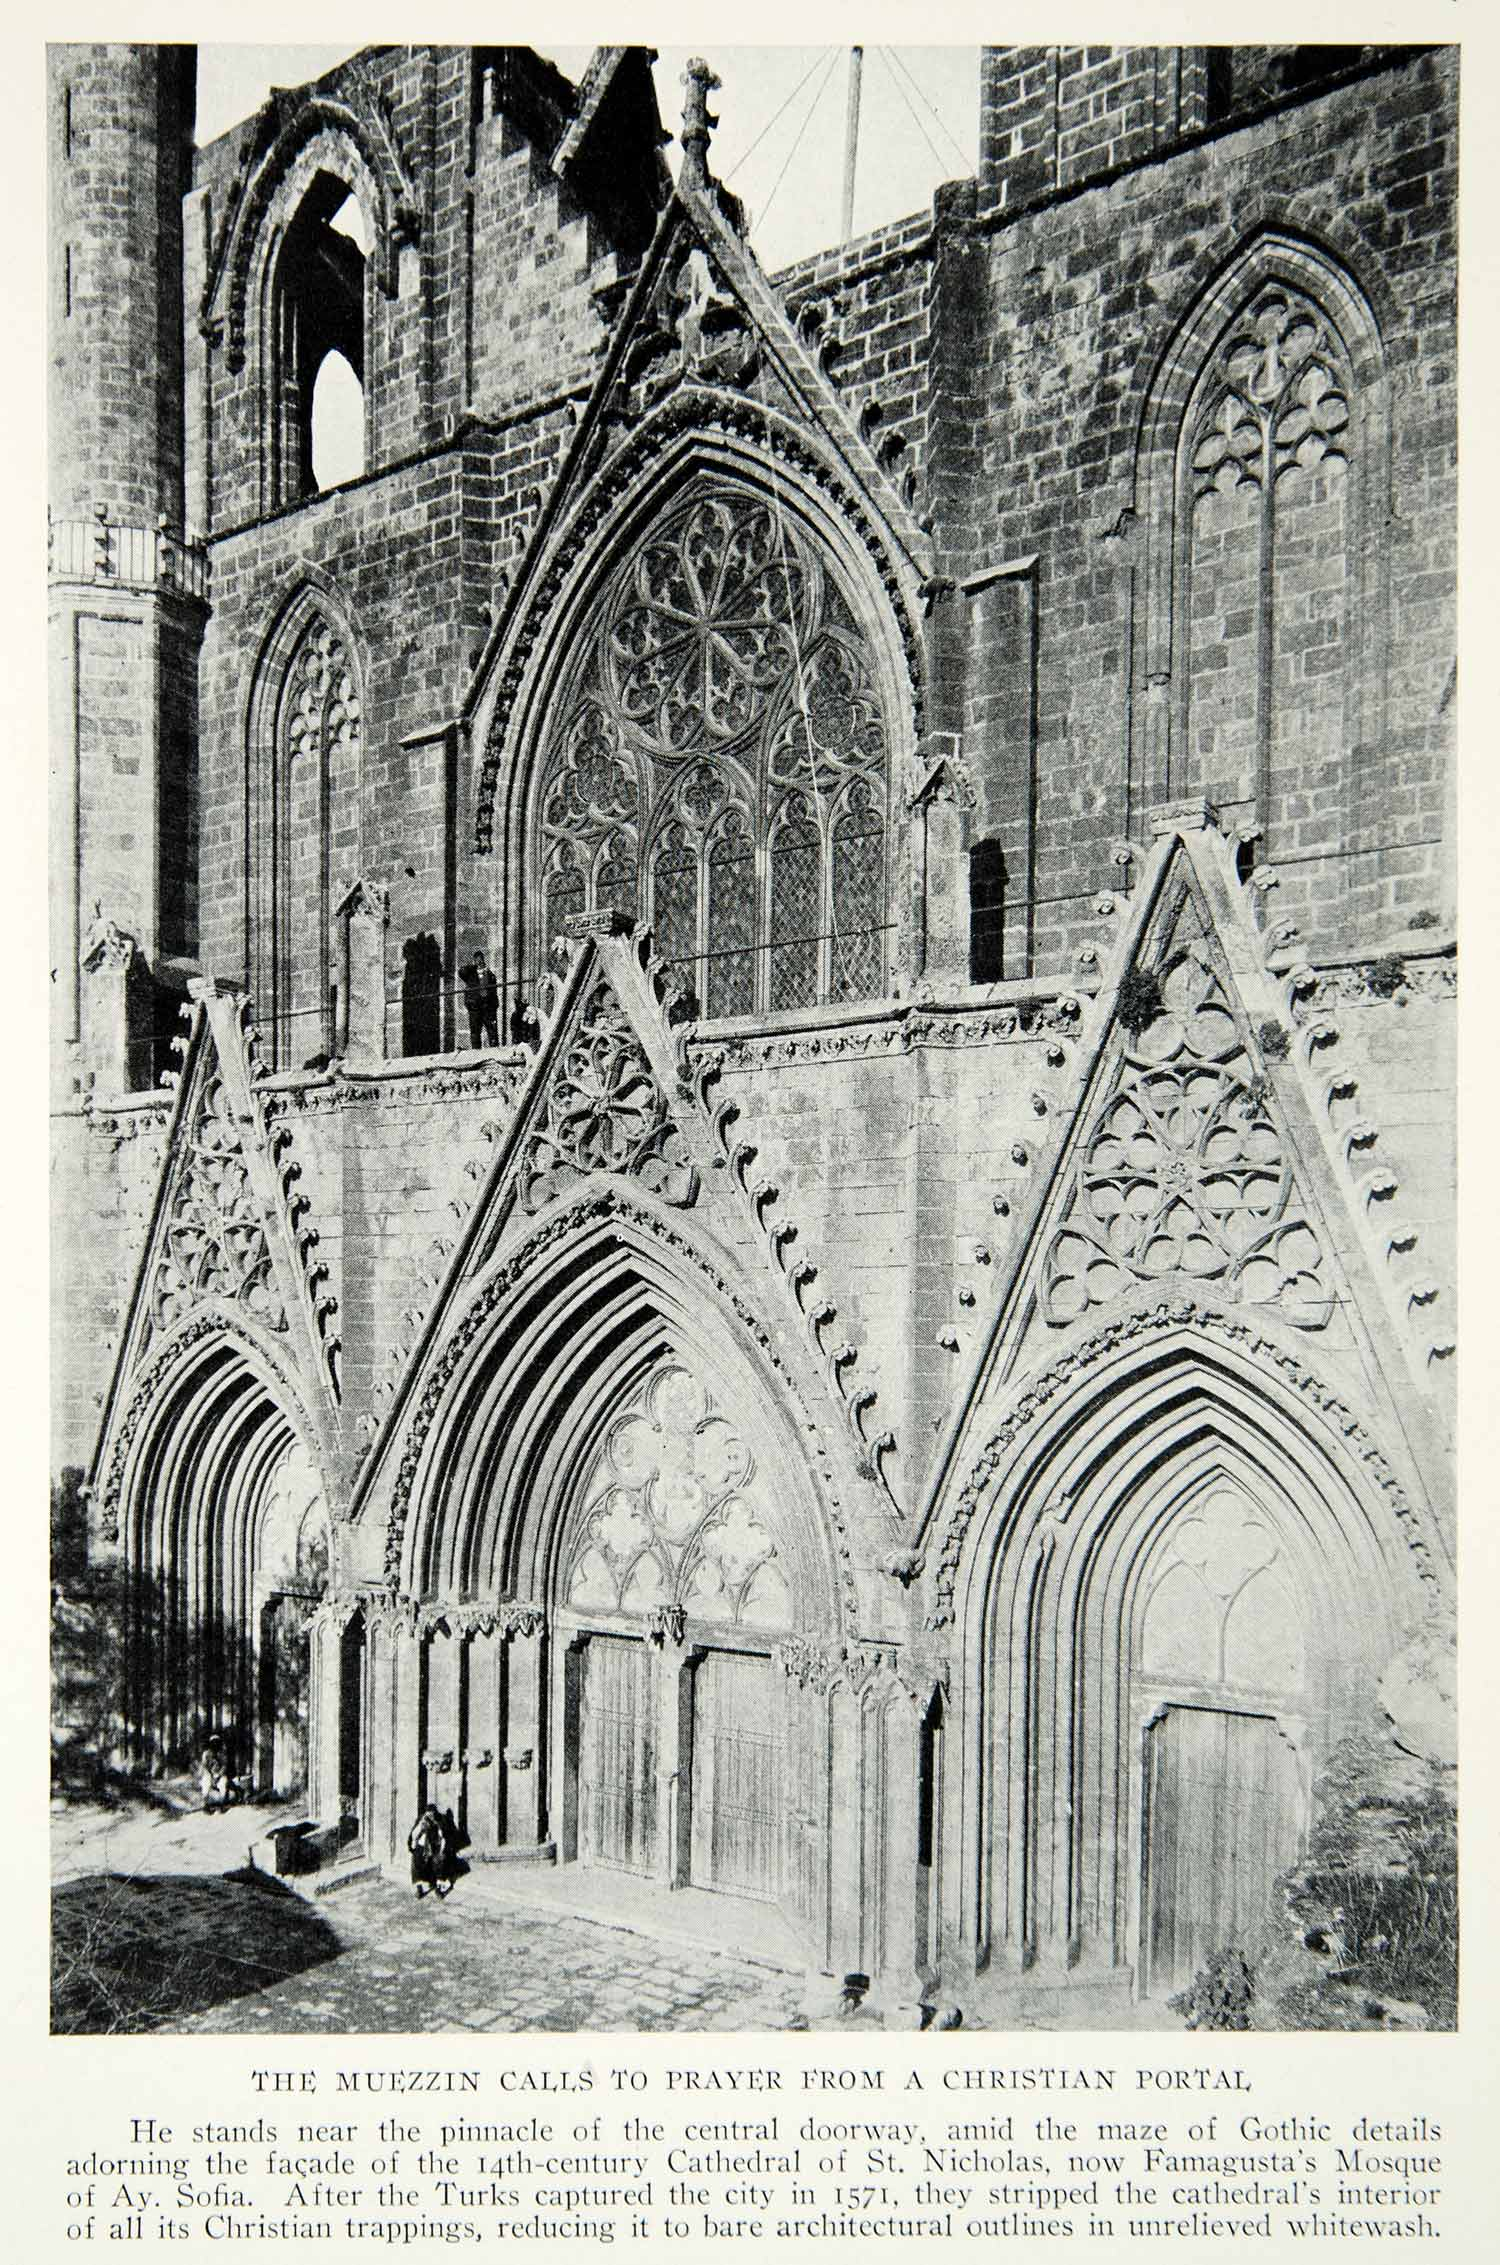 photo relating to St Nicholas Prayer Printable identified as 1928 Print Cathedral St. Nicholas Cyprus Famagusta Mosque Mediterranean NGMA1